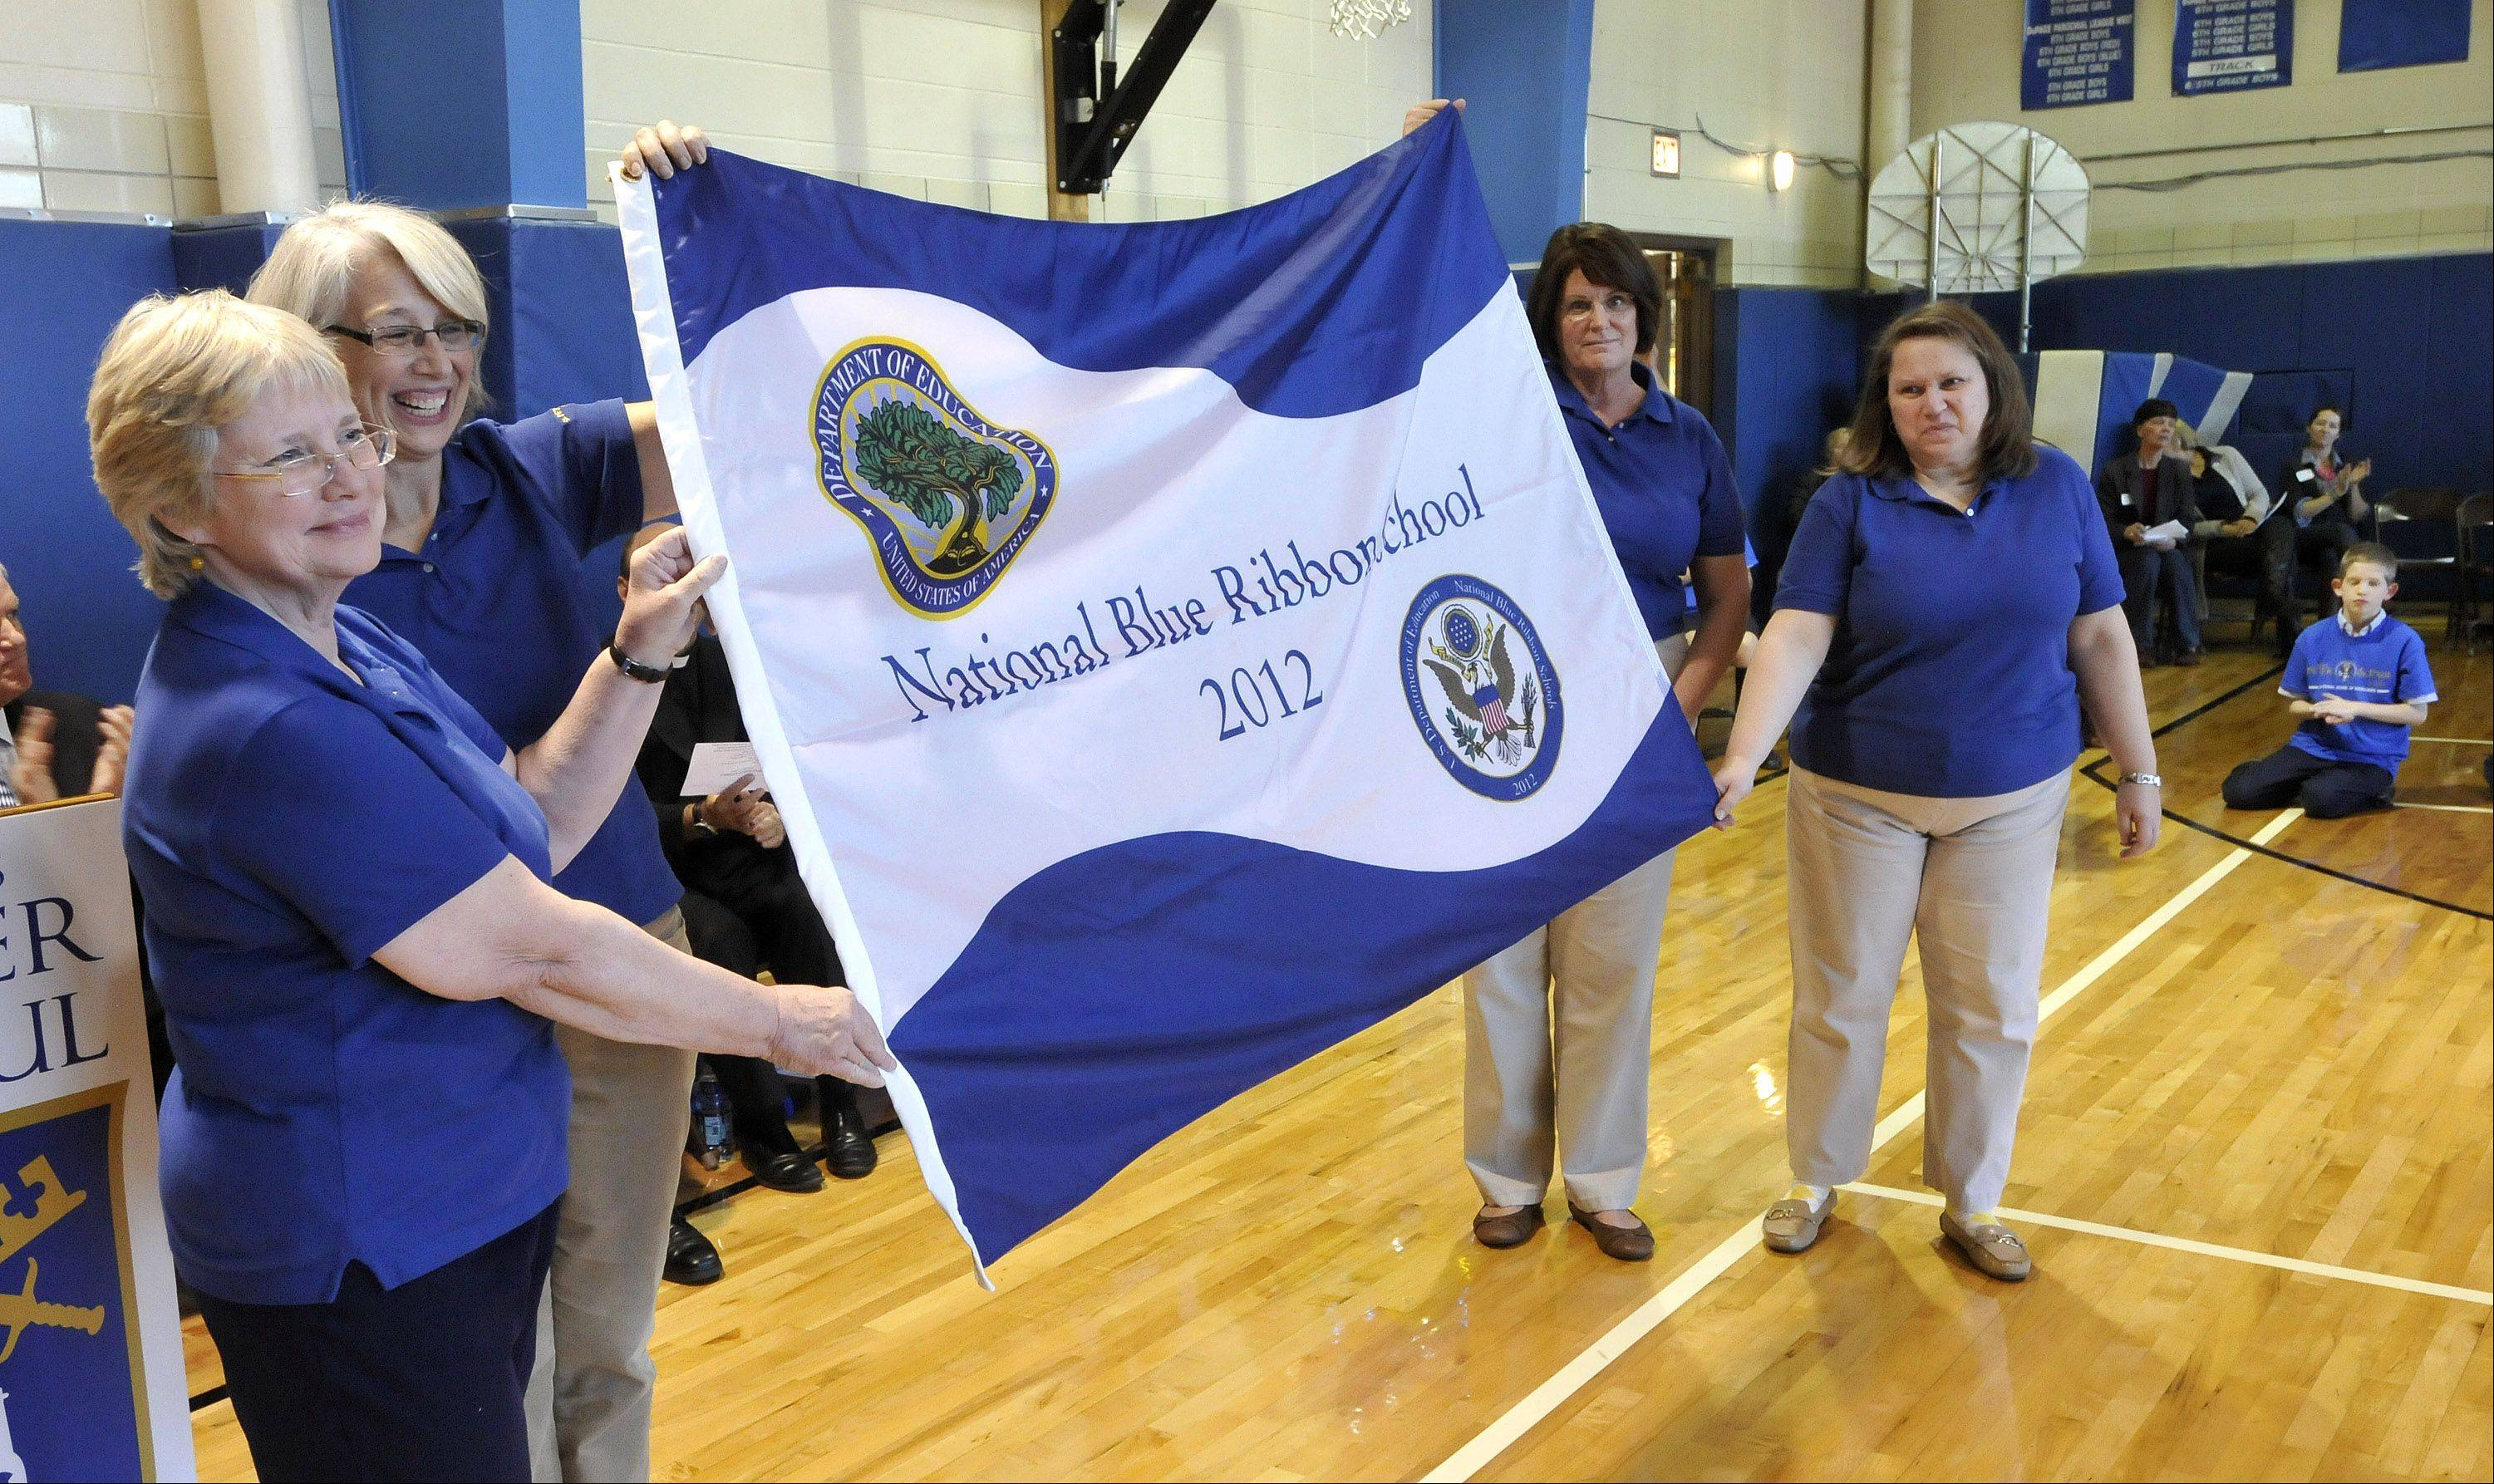 Veteran teachers Maura Gleason, Sue Gensler, Mary Skroch and Penny Schur display the Blue Ribbon flag that will fly over Ss. Peter and Paul for the rest of the school year.